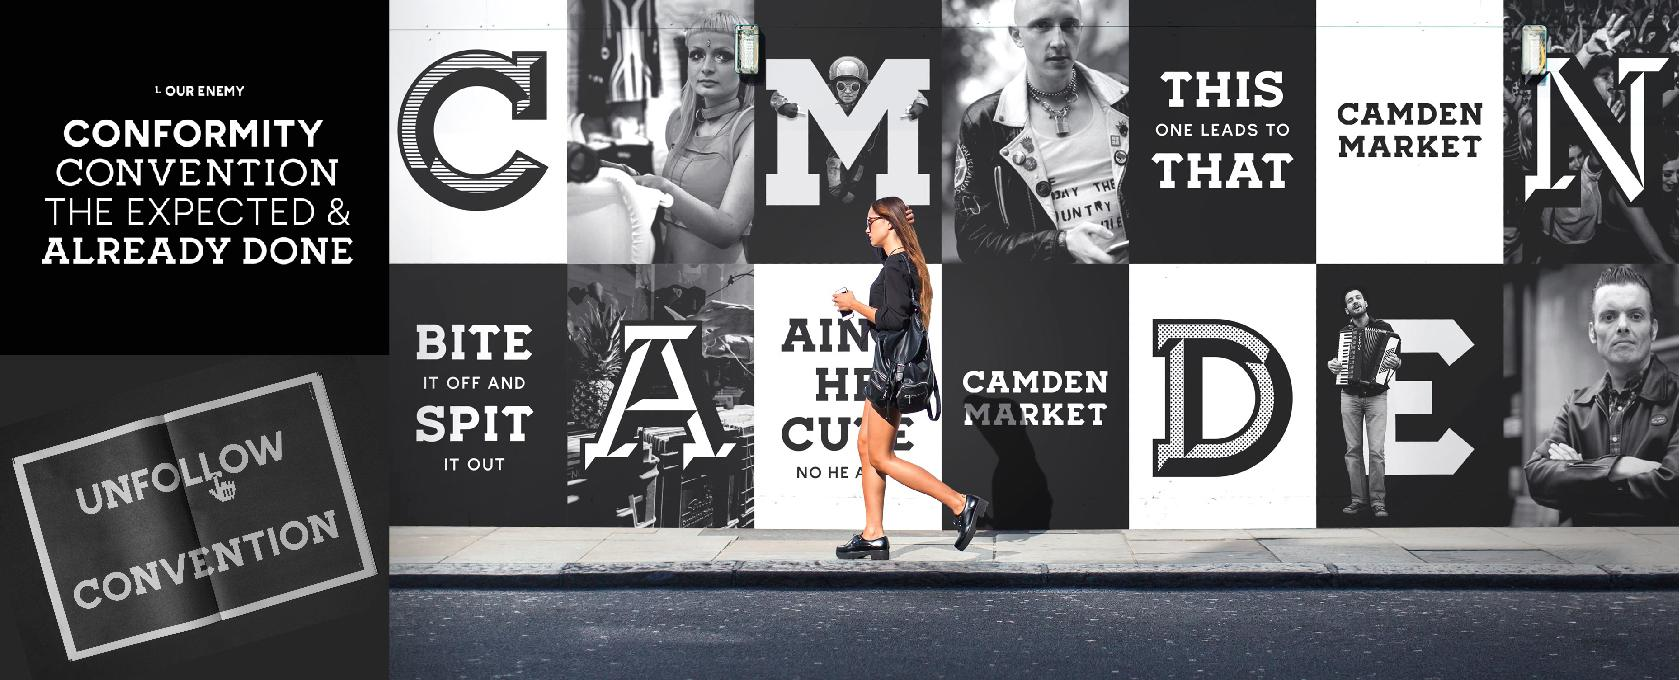 Camden Market's successful rebranding reflects its community.